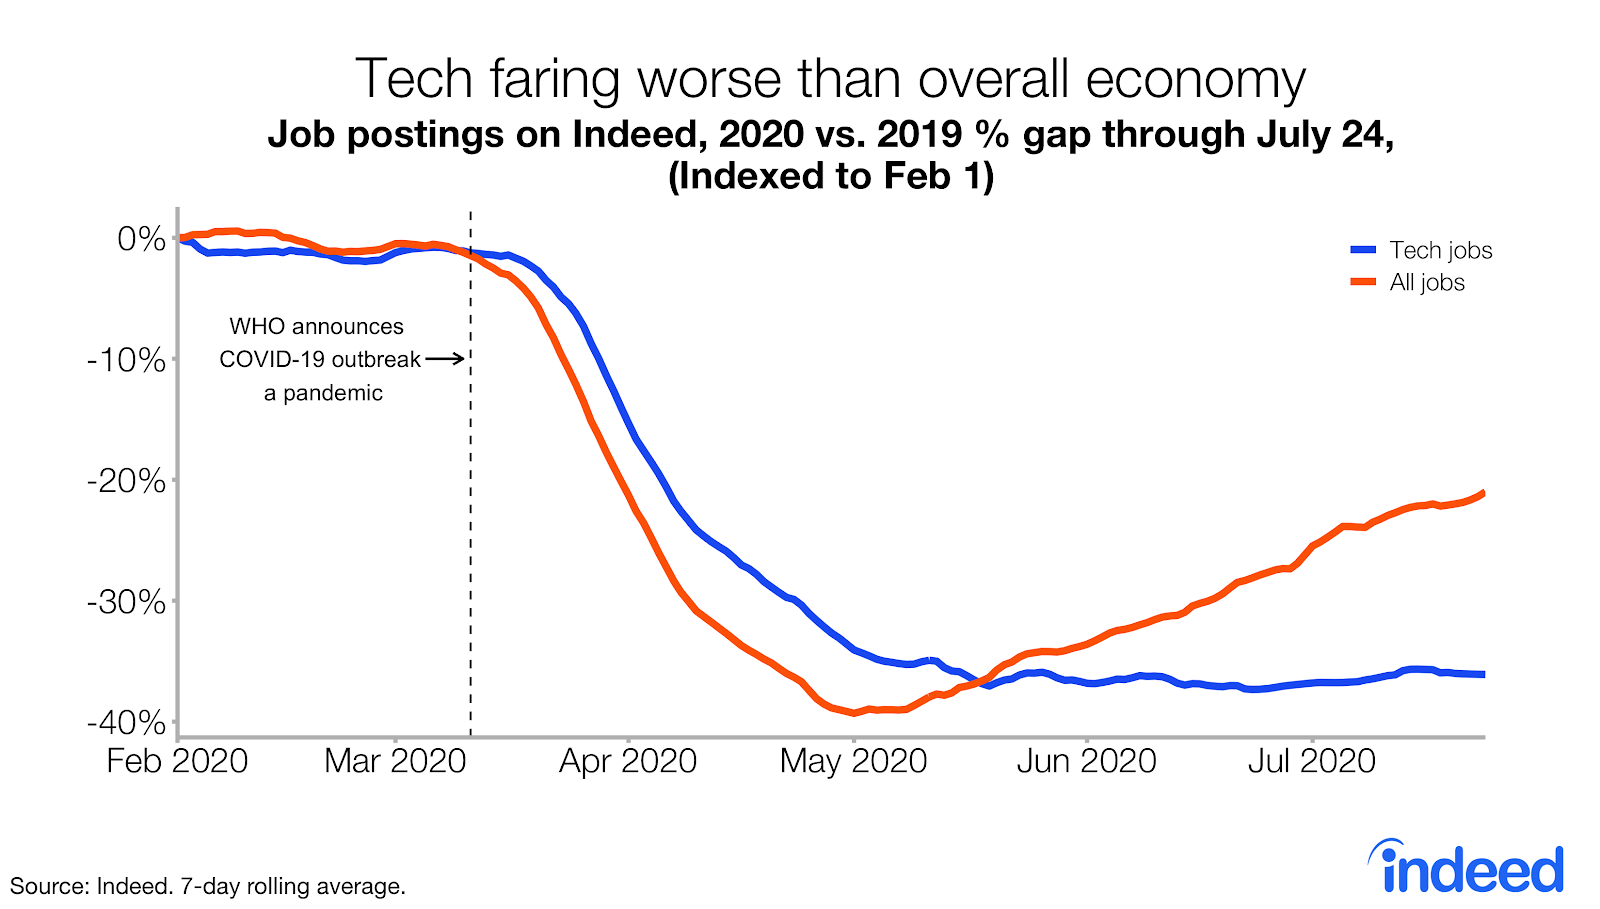 Tech faring worse than overall economy